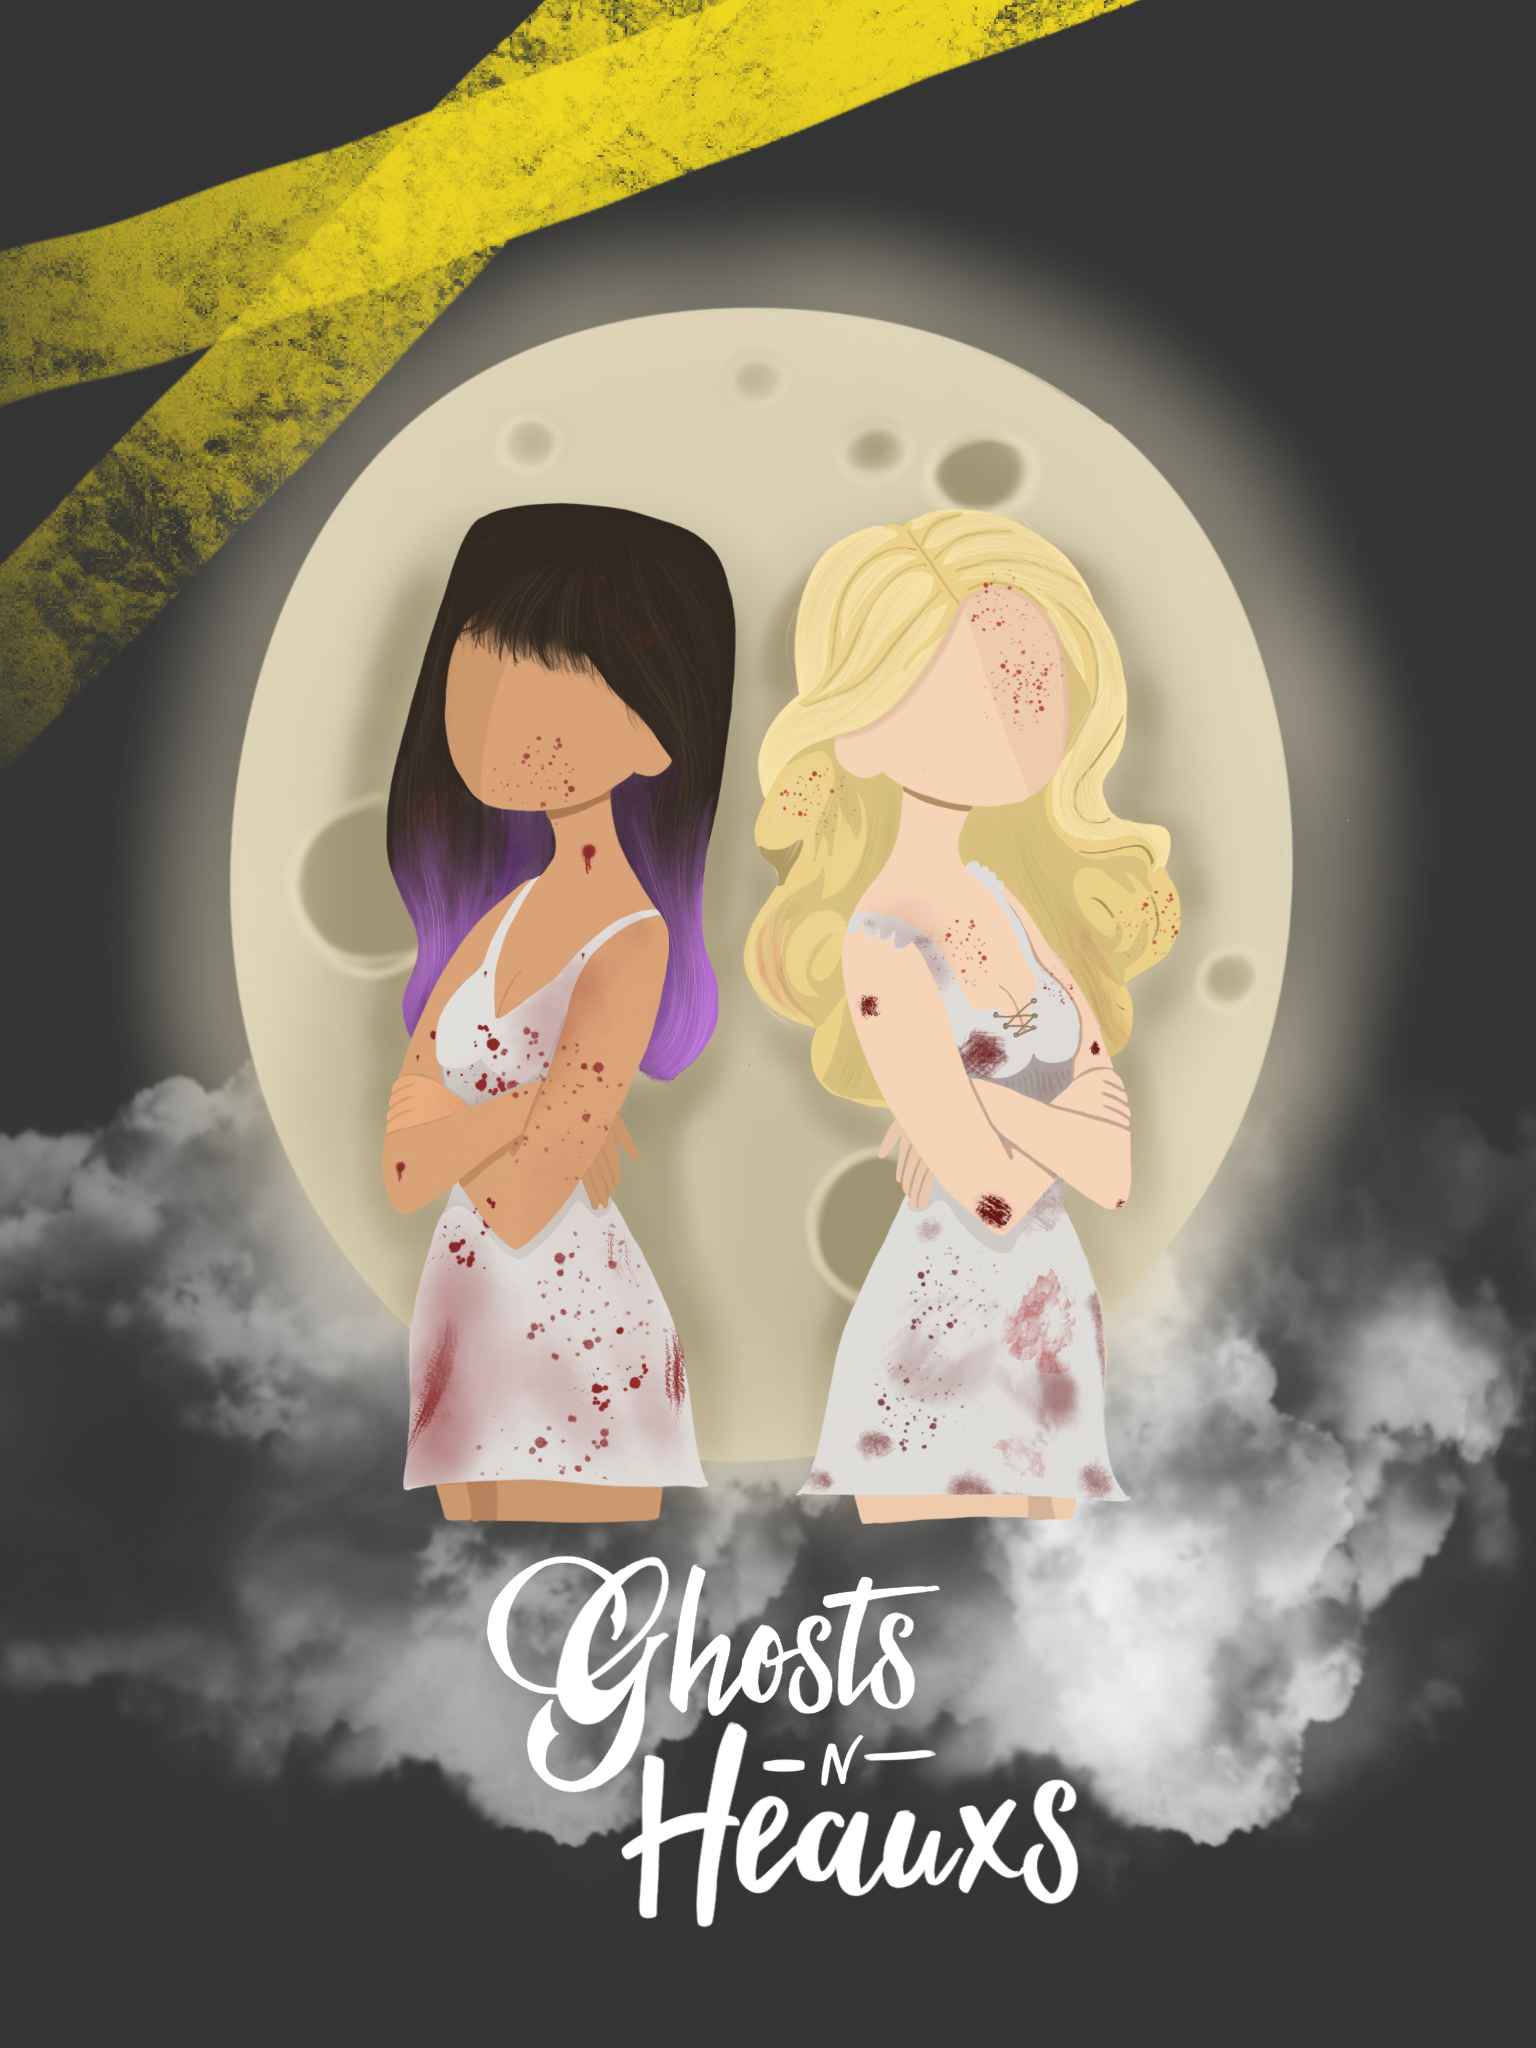 Ghosts-n-Heauxs - Pull up a seat and listen to paranormal investigators Danielle & Zee talk about the paranormal, true crime, the occult and all things spooky!Hosted by Nawal Massari & Danielle Hpi